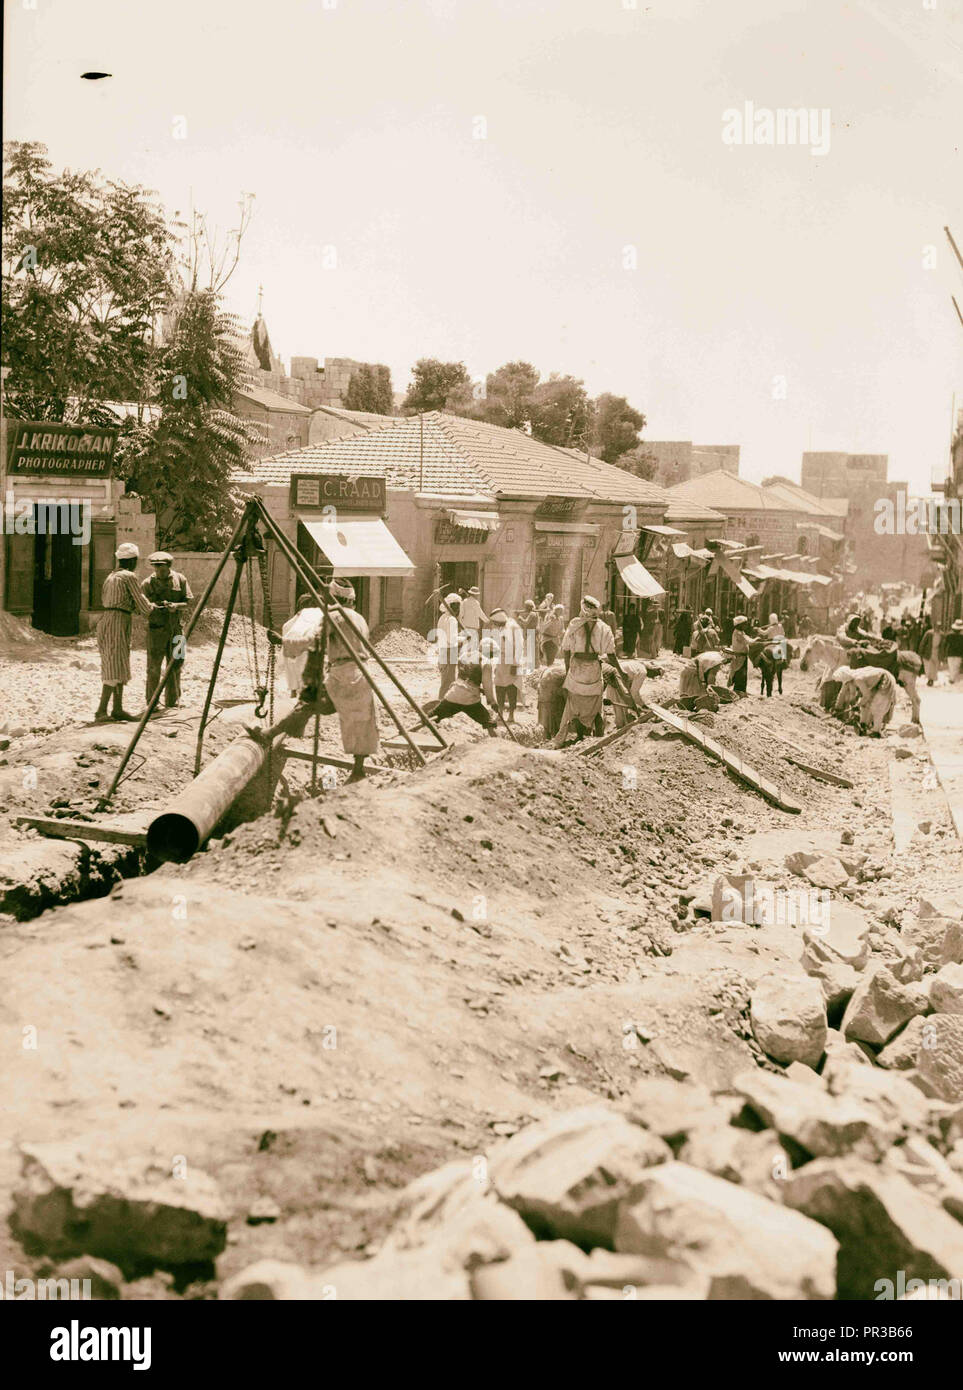 Clearing around city wall. Digging sewage canals on Jaffa Road. Photo shows the photograph studios of 'J. Krikorian' - Stock Image